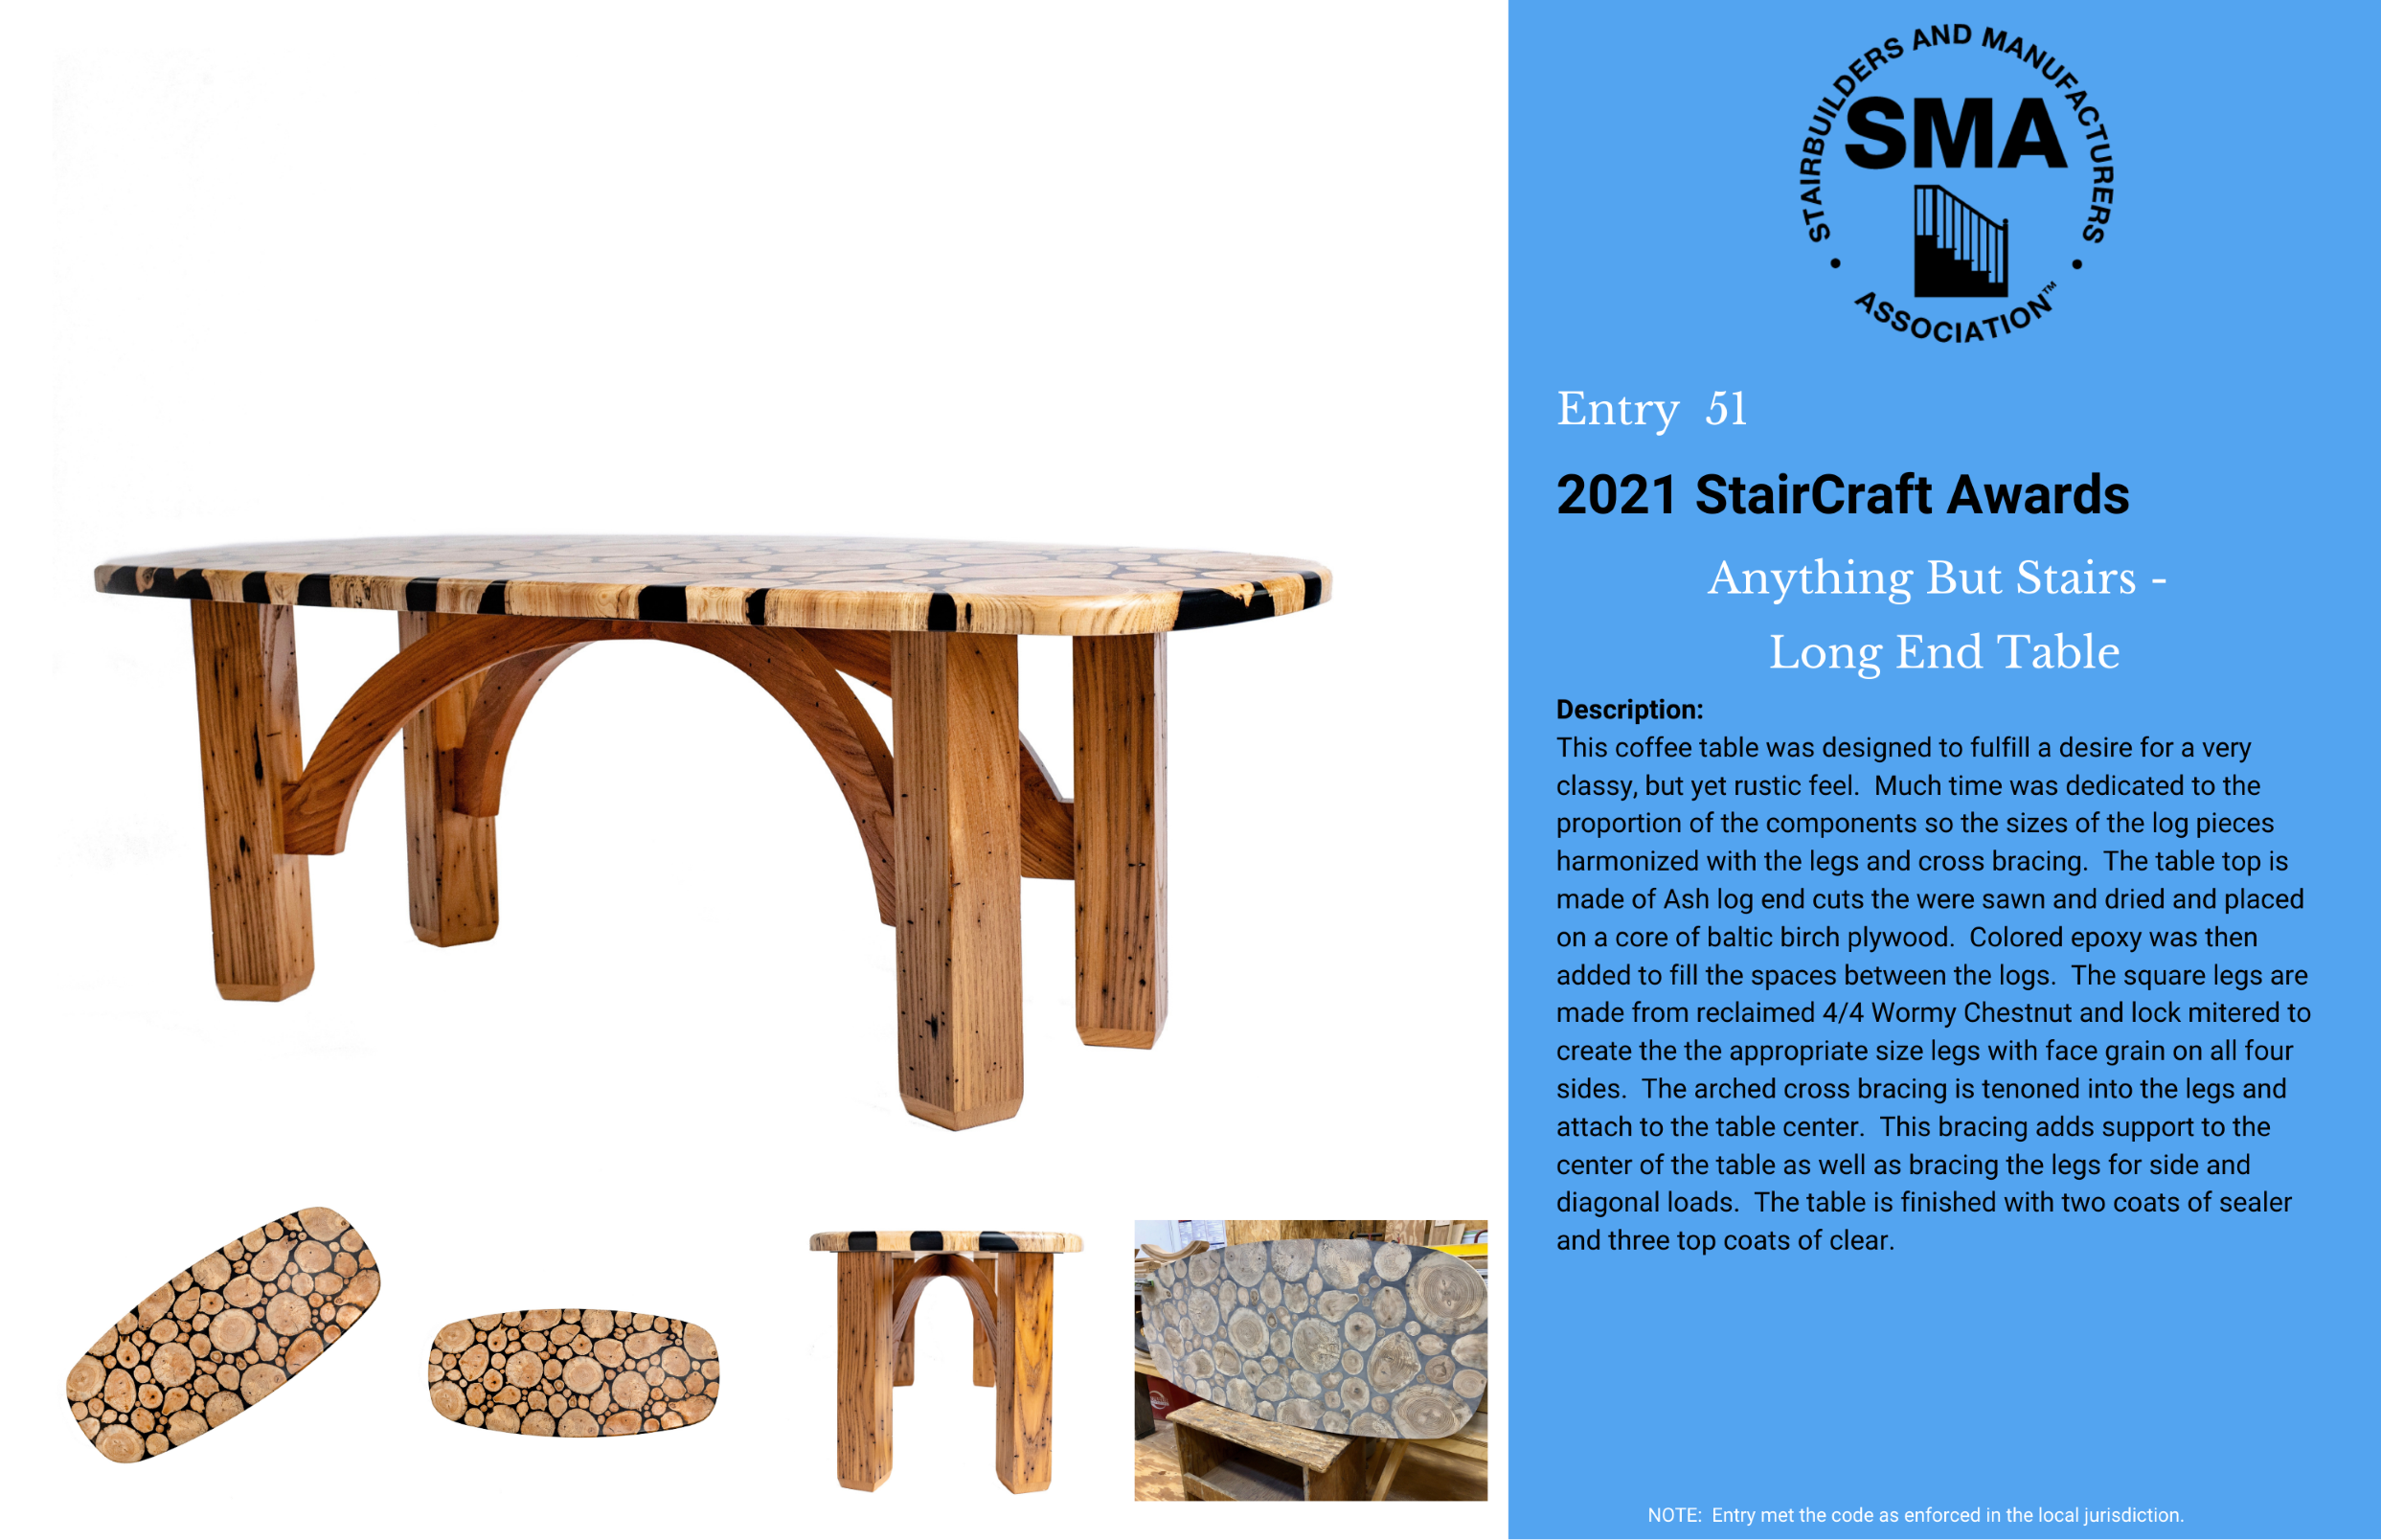 2021 StairCraft Awards Entry 51